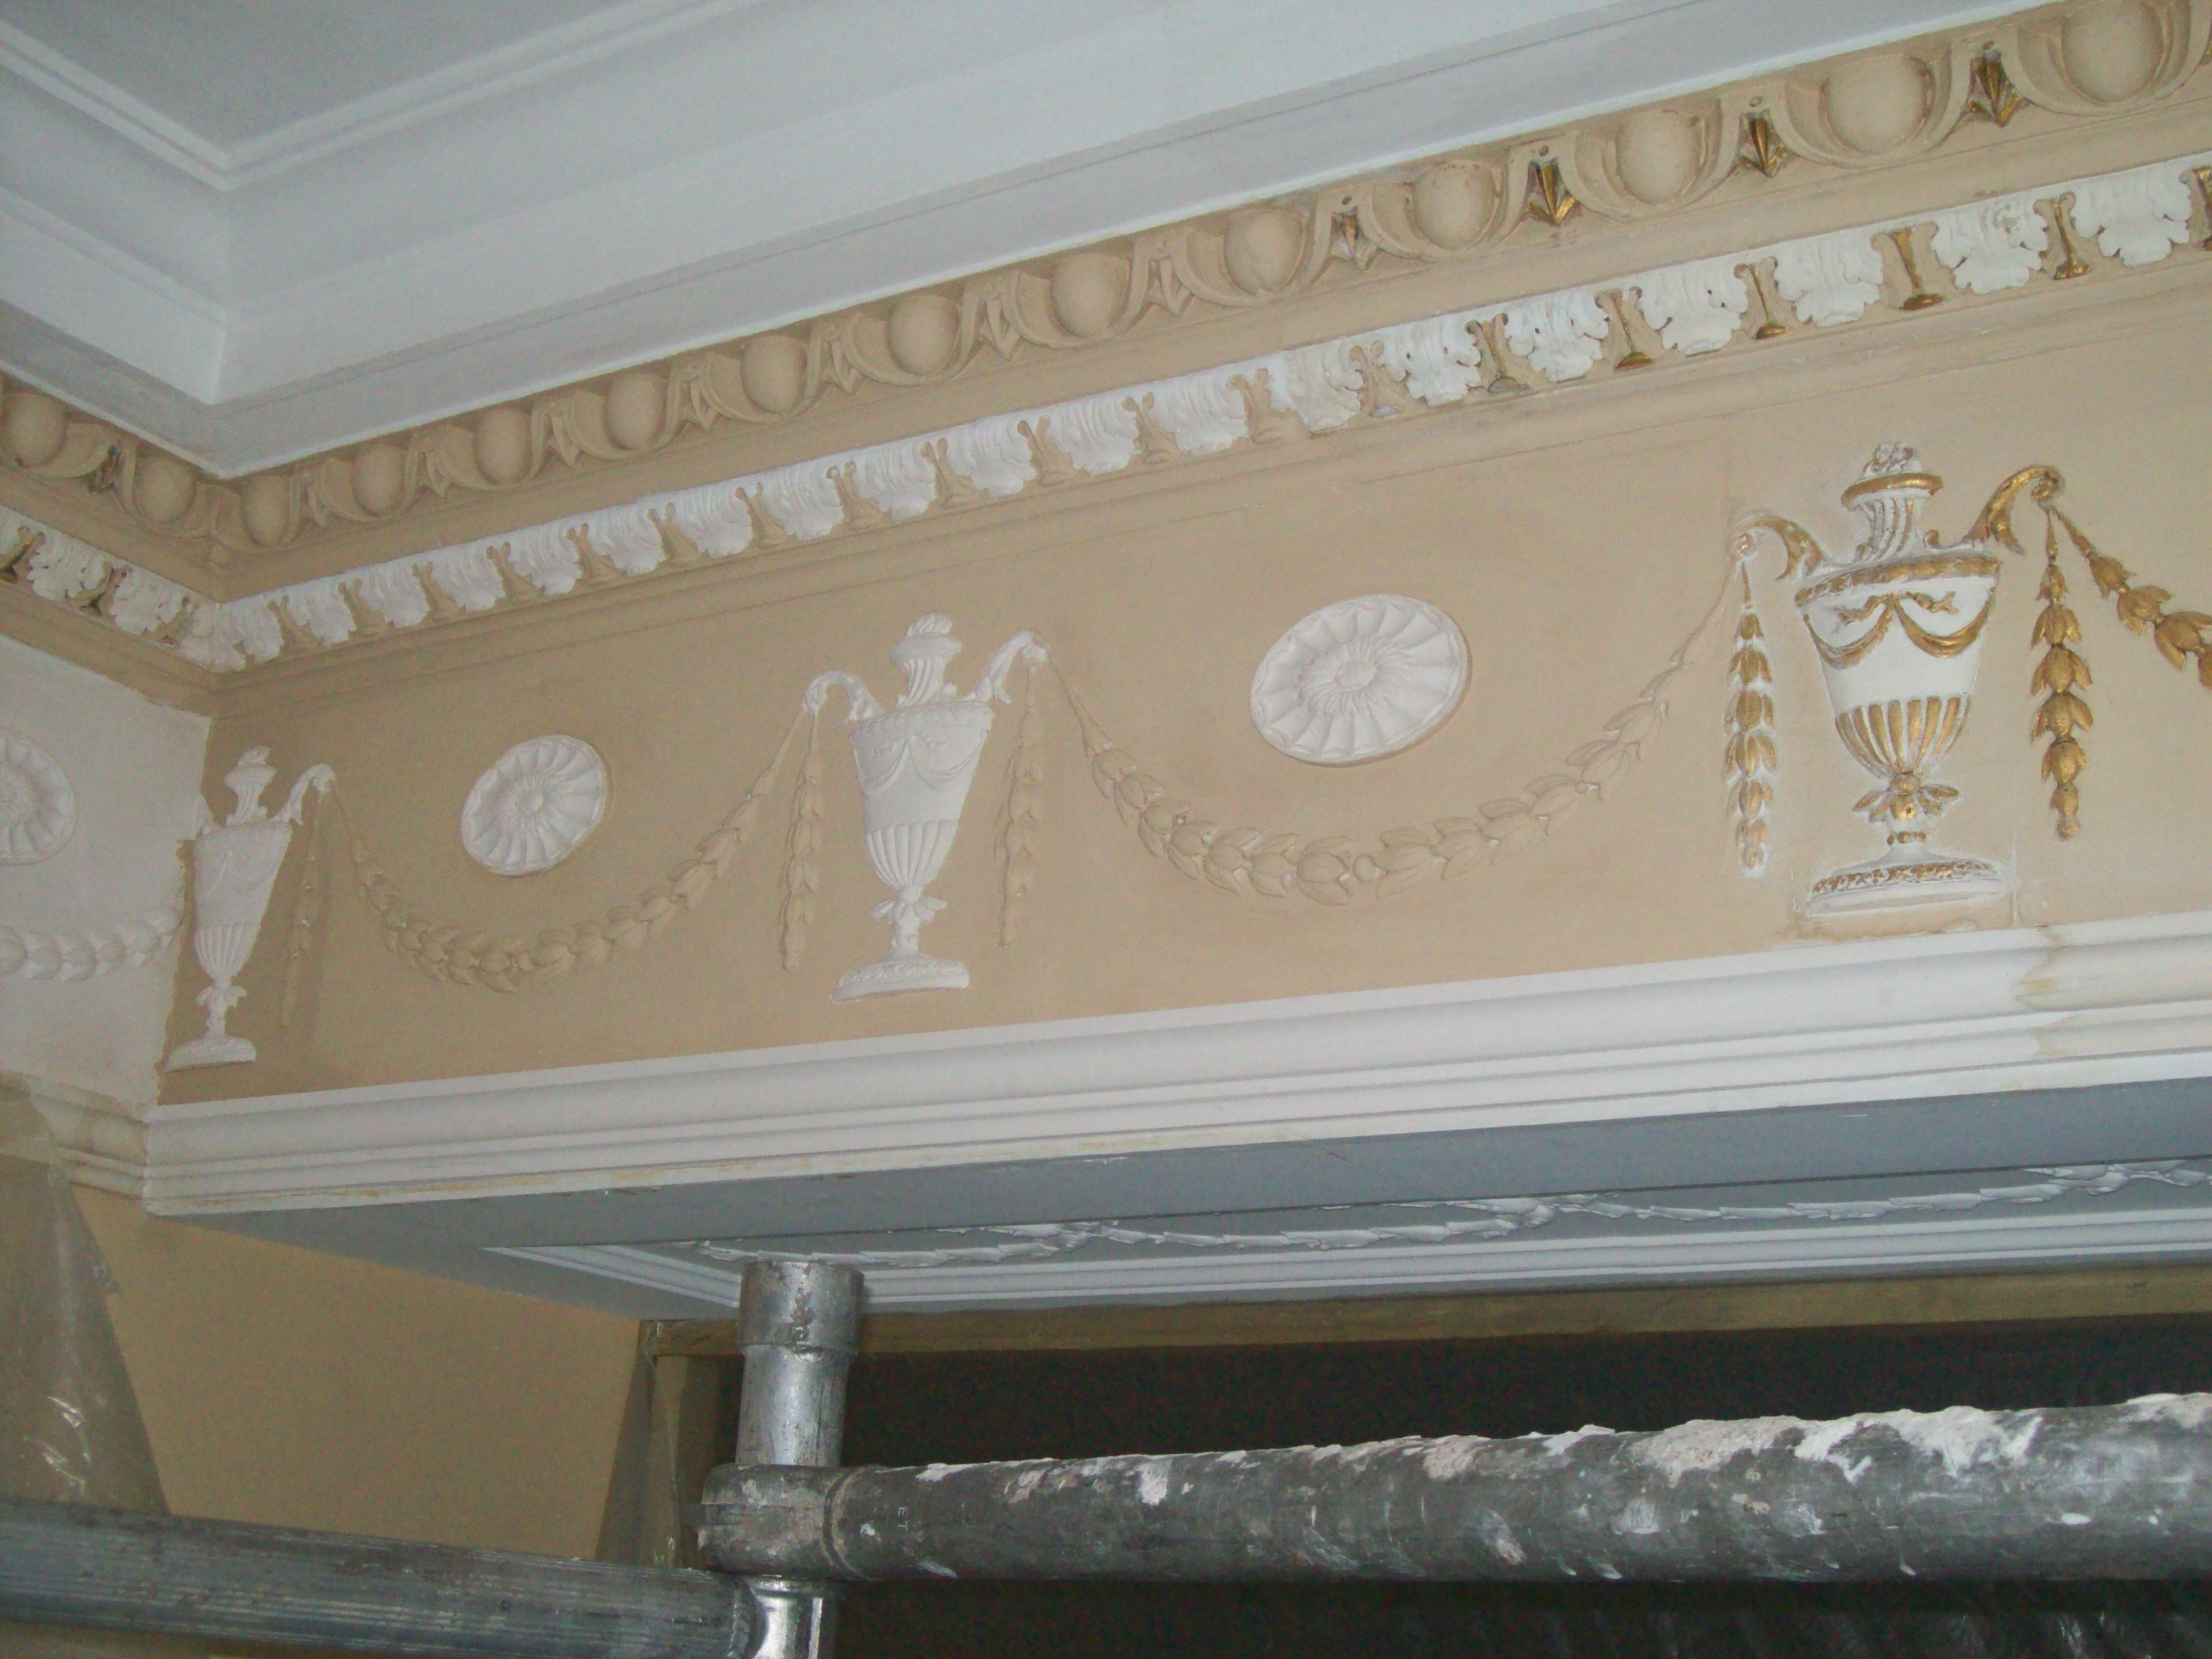 repaired ornate plaster cornice and freize, decorative plasterwork, fibrous plastering.